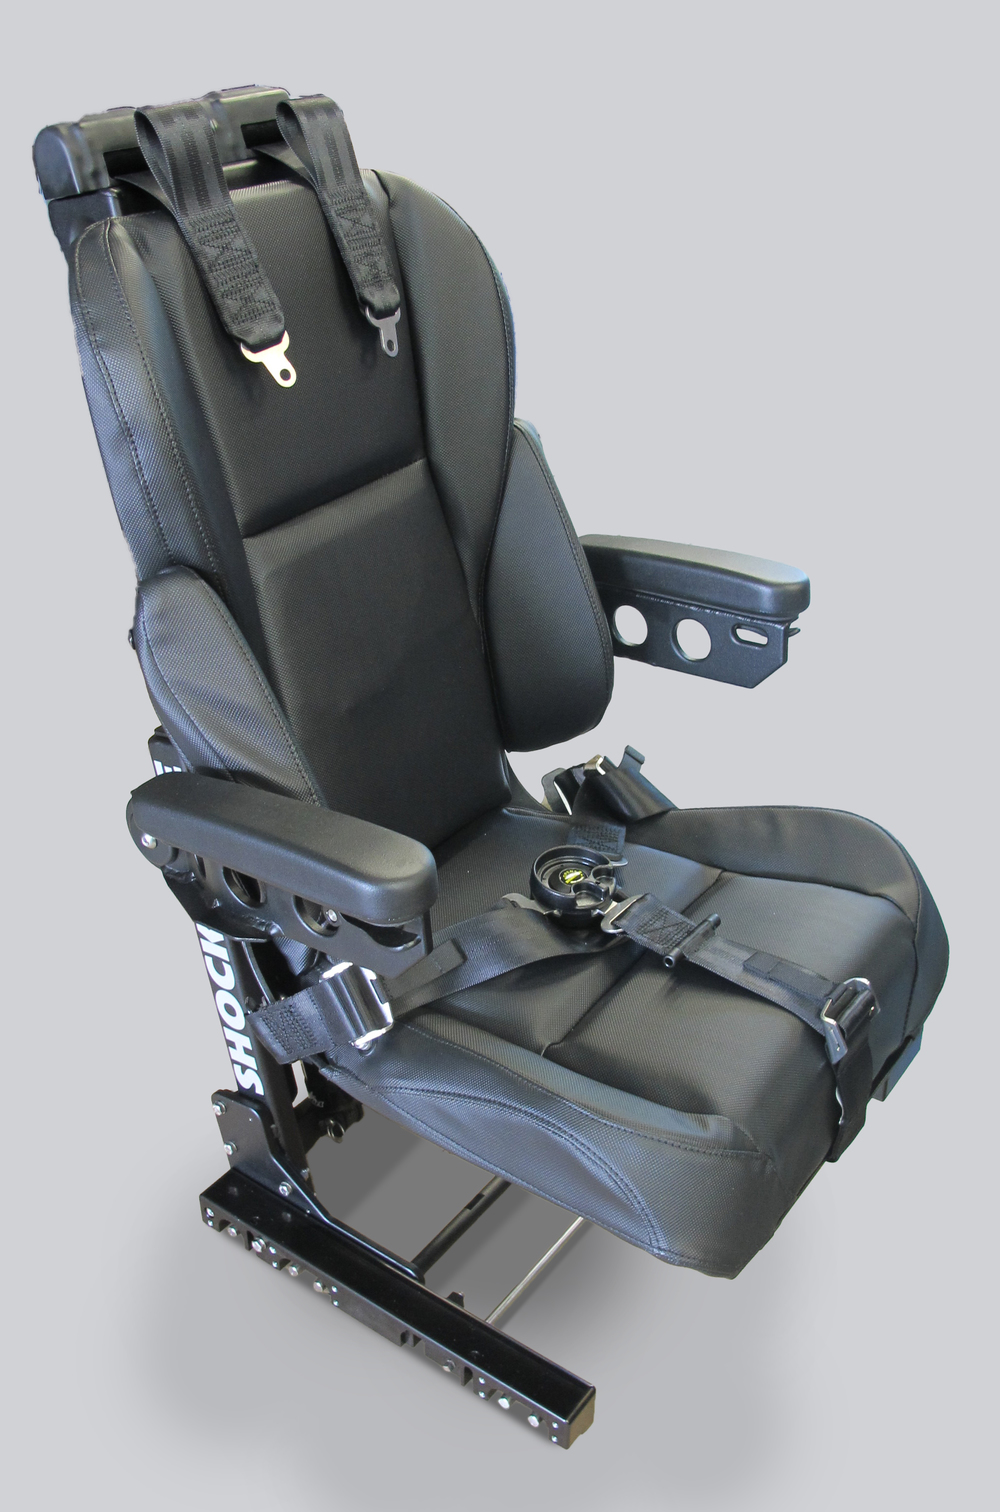 Operators Suspension Seat which was selected by the U.S. Navy for the Landing Craft Air Cushion in 2014.